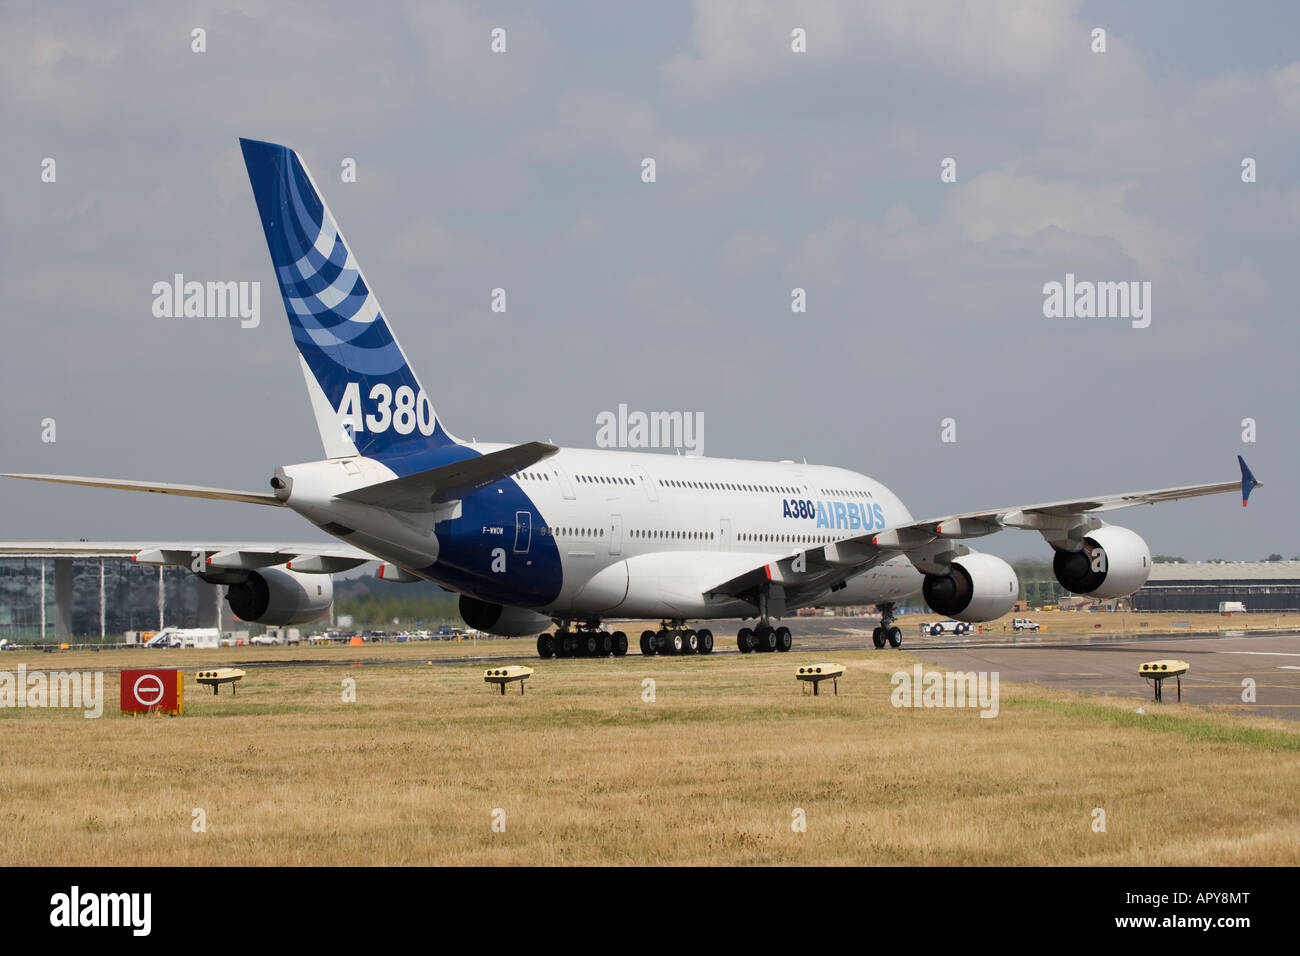 Airbus A380 superjumbo new technology advanced biggest passenger commercial plane in the world blue sky - Stock Image